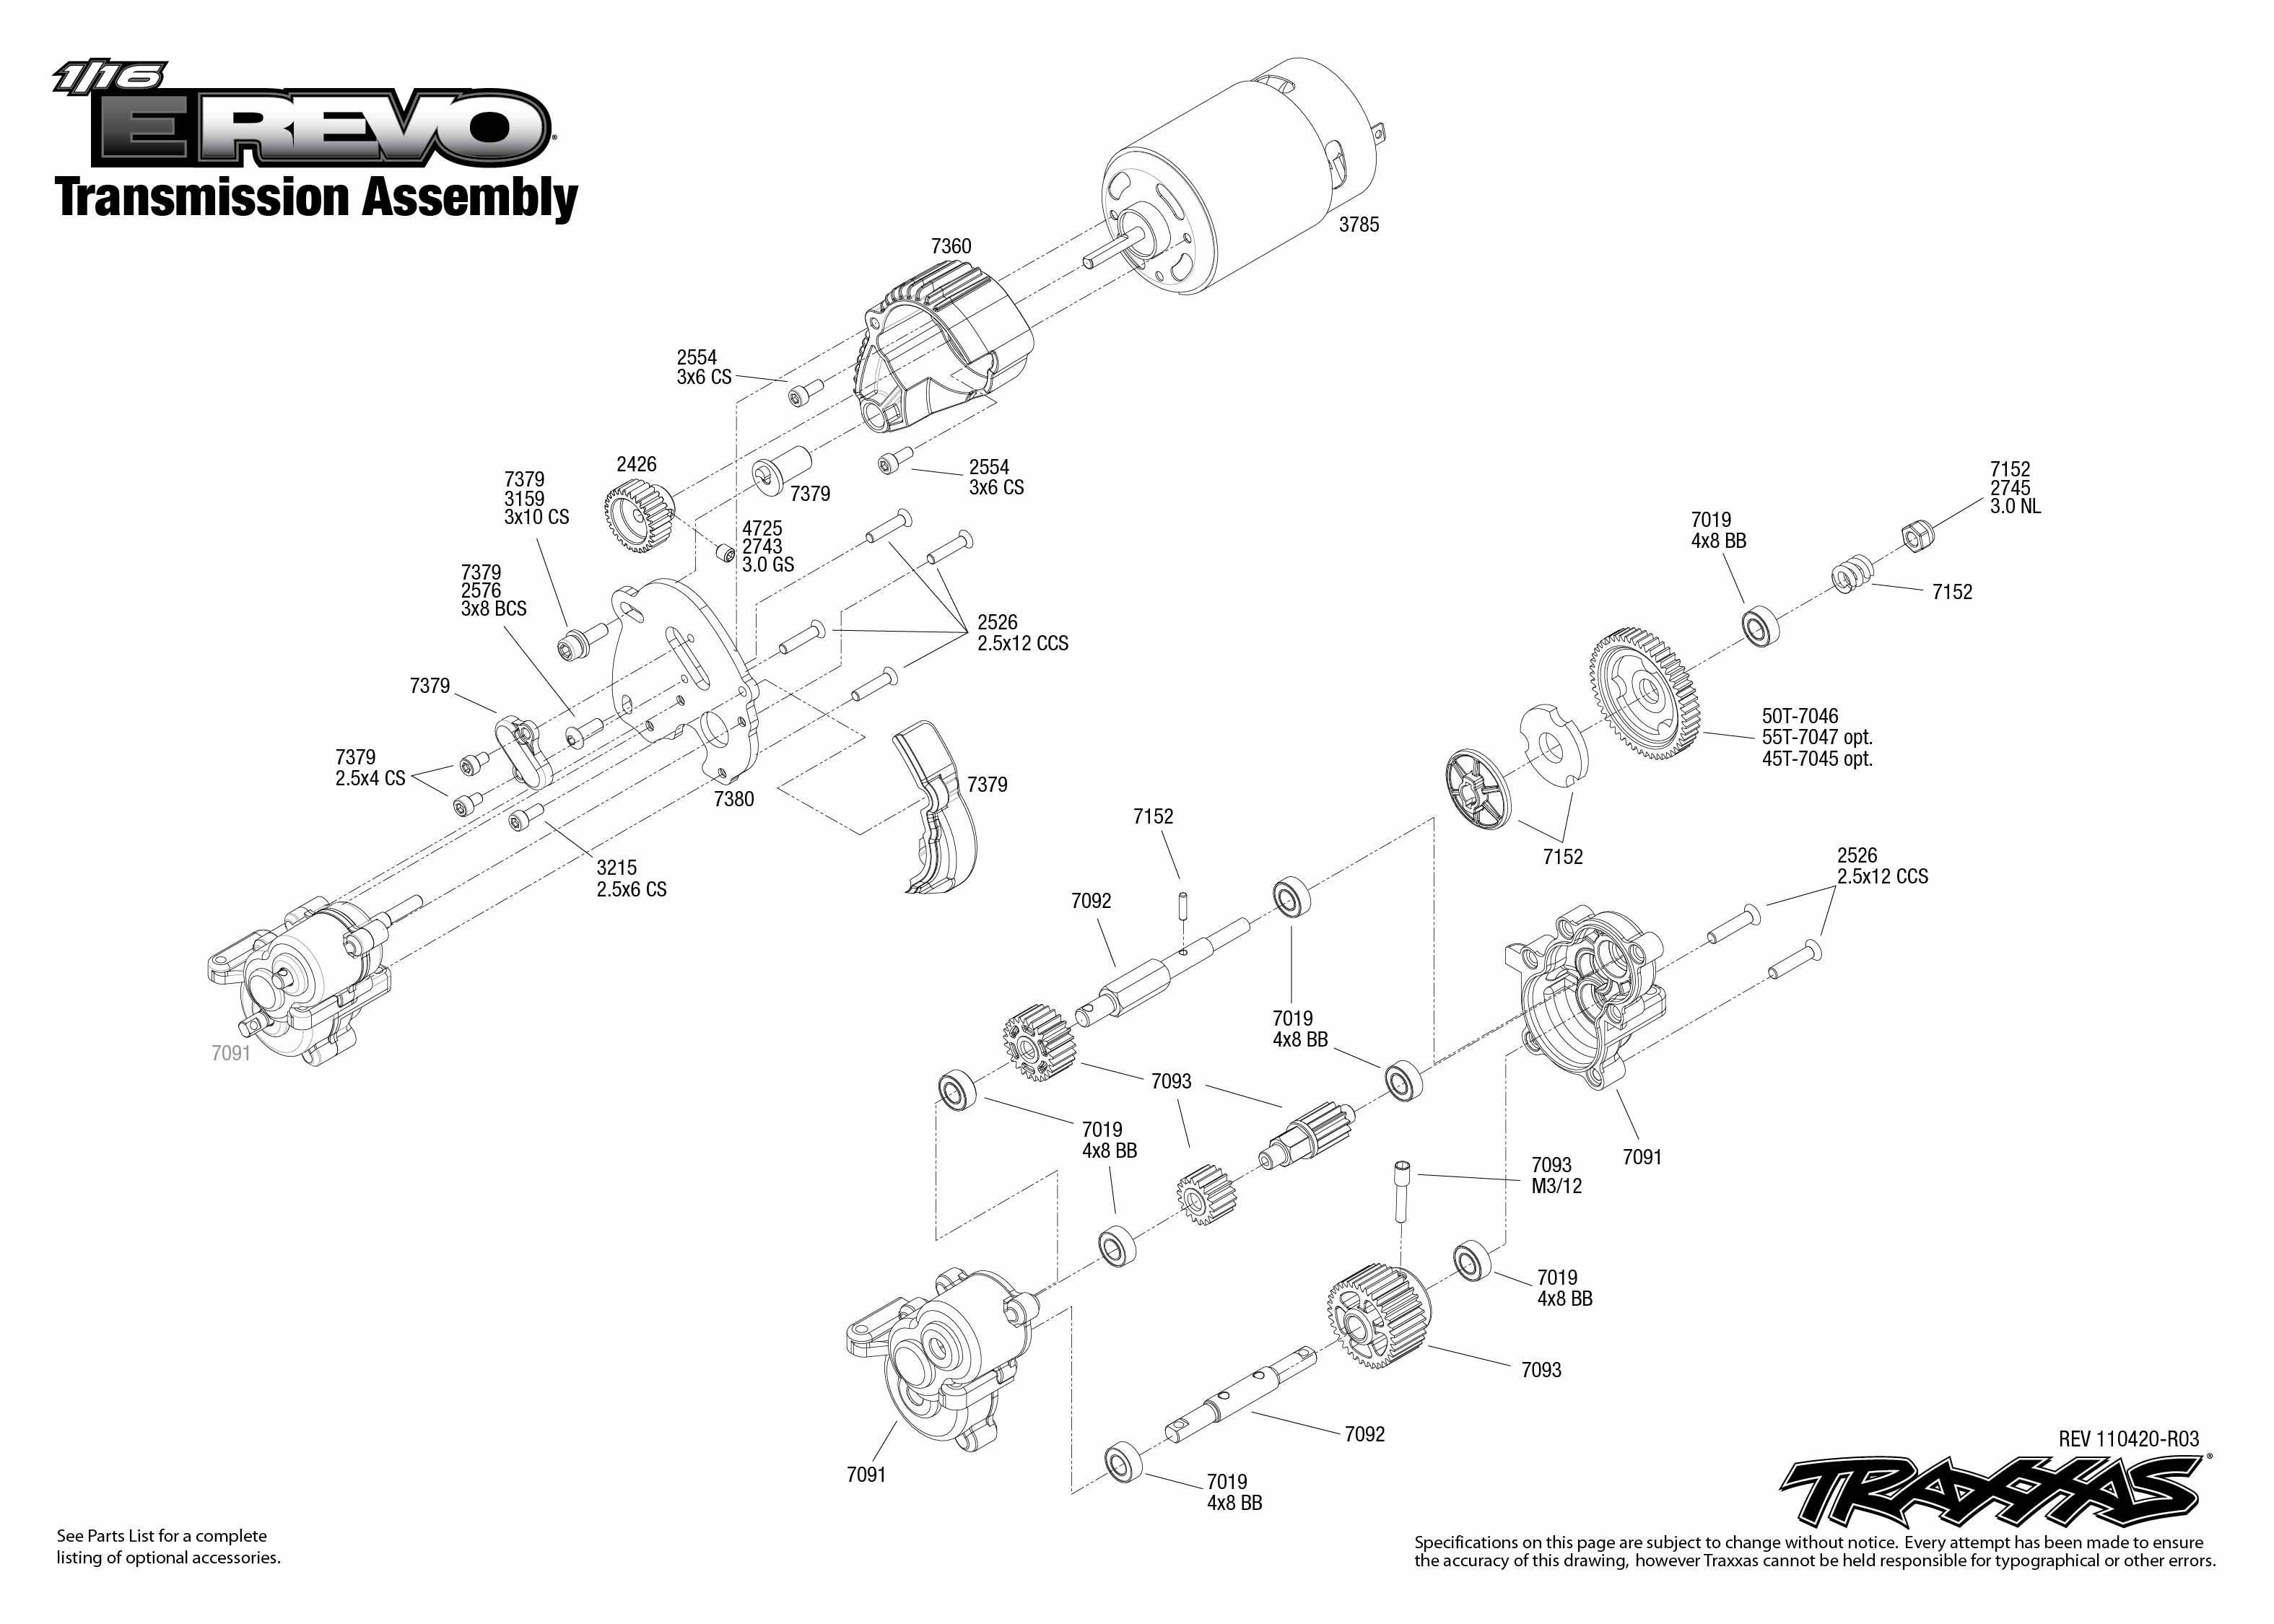 traxxas jato wiring diagram traxxas revo 3 3 wiring automatic transmission exploded diagram Engine Exploded View